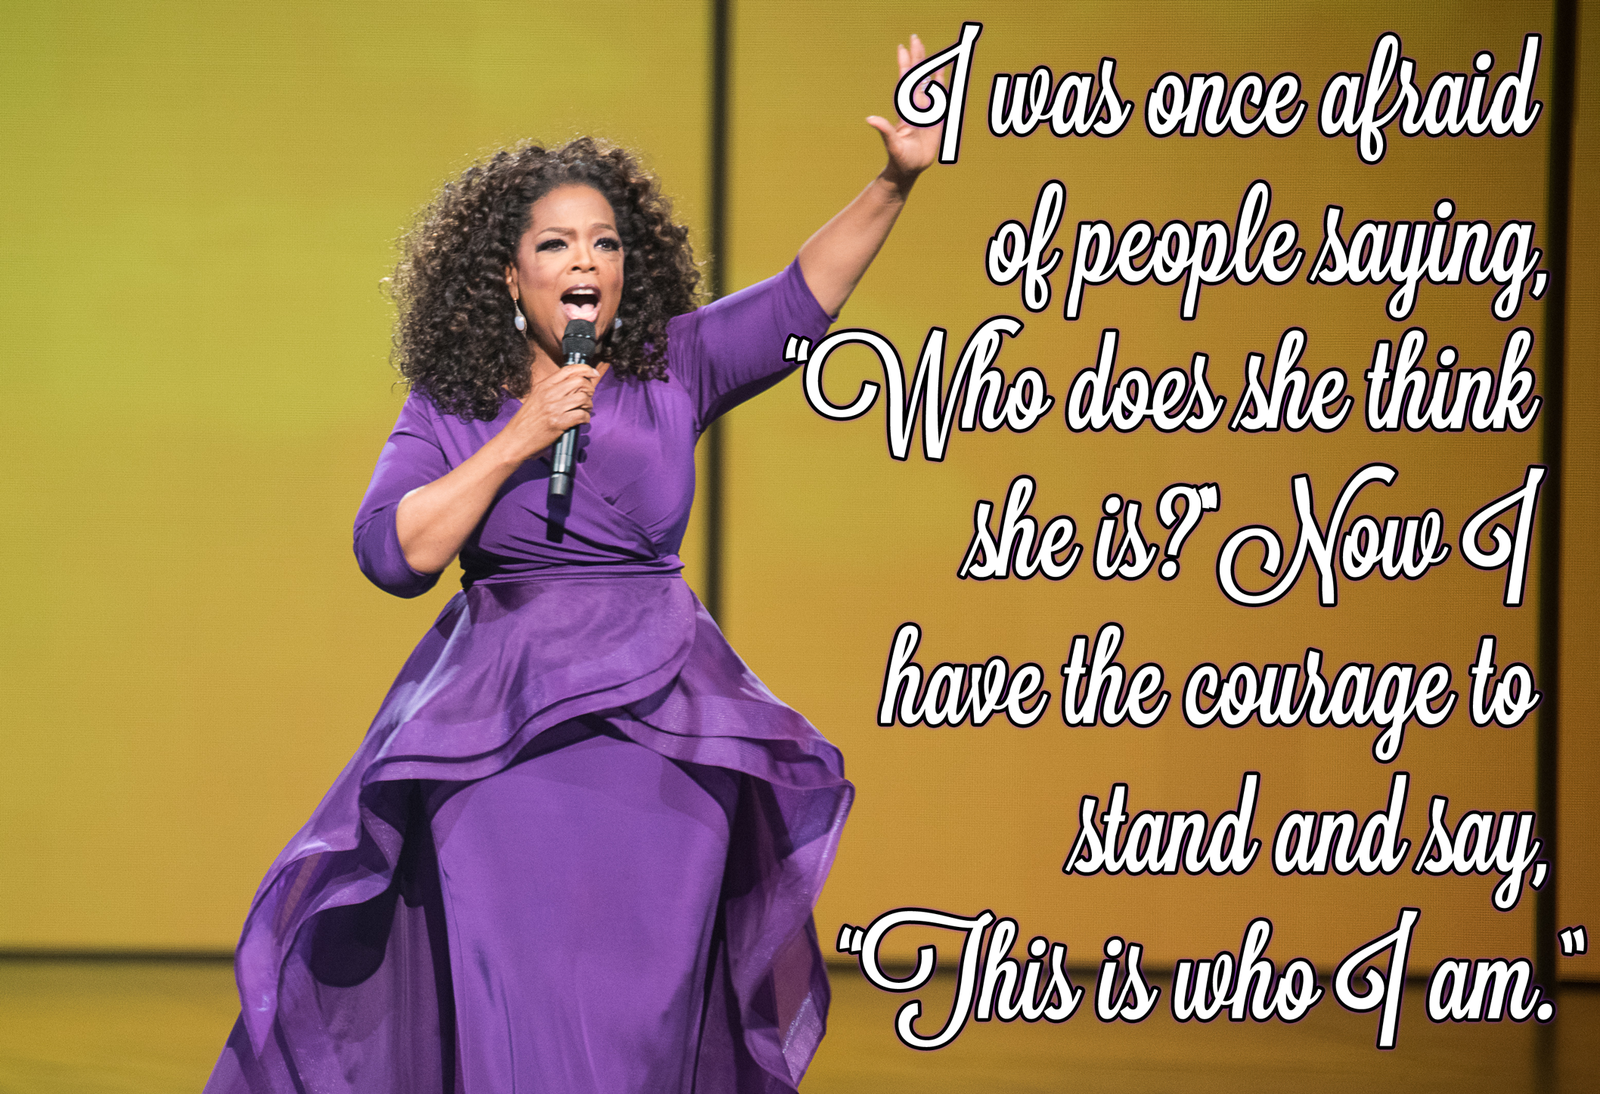 58 Oprah Quotes To Empower, Delight, And Inspire